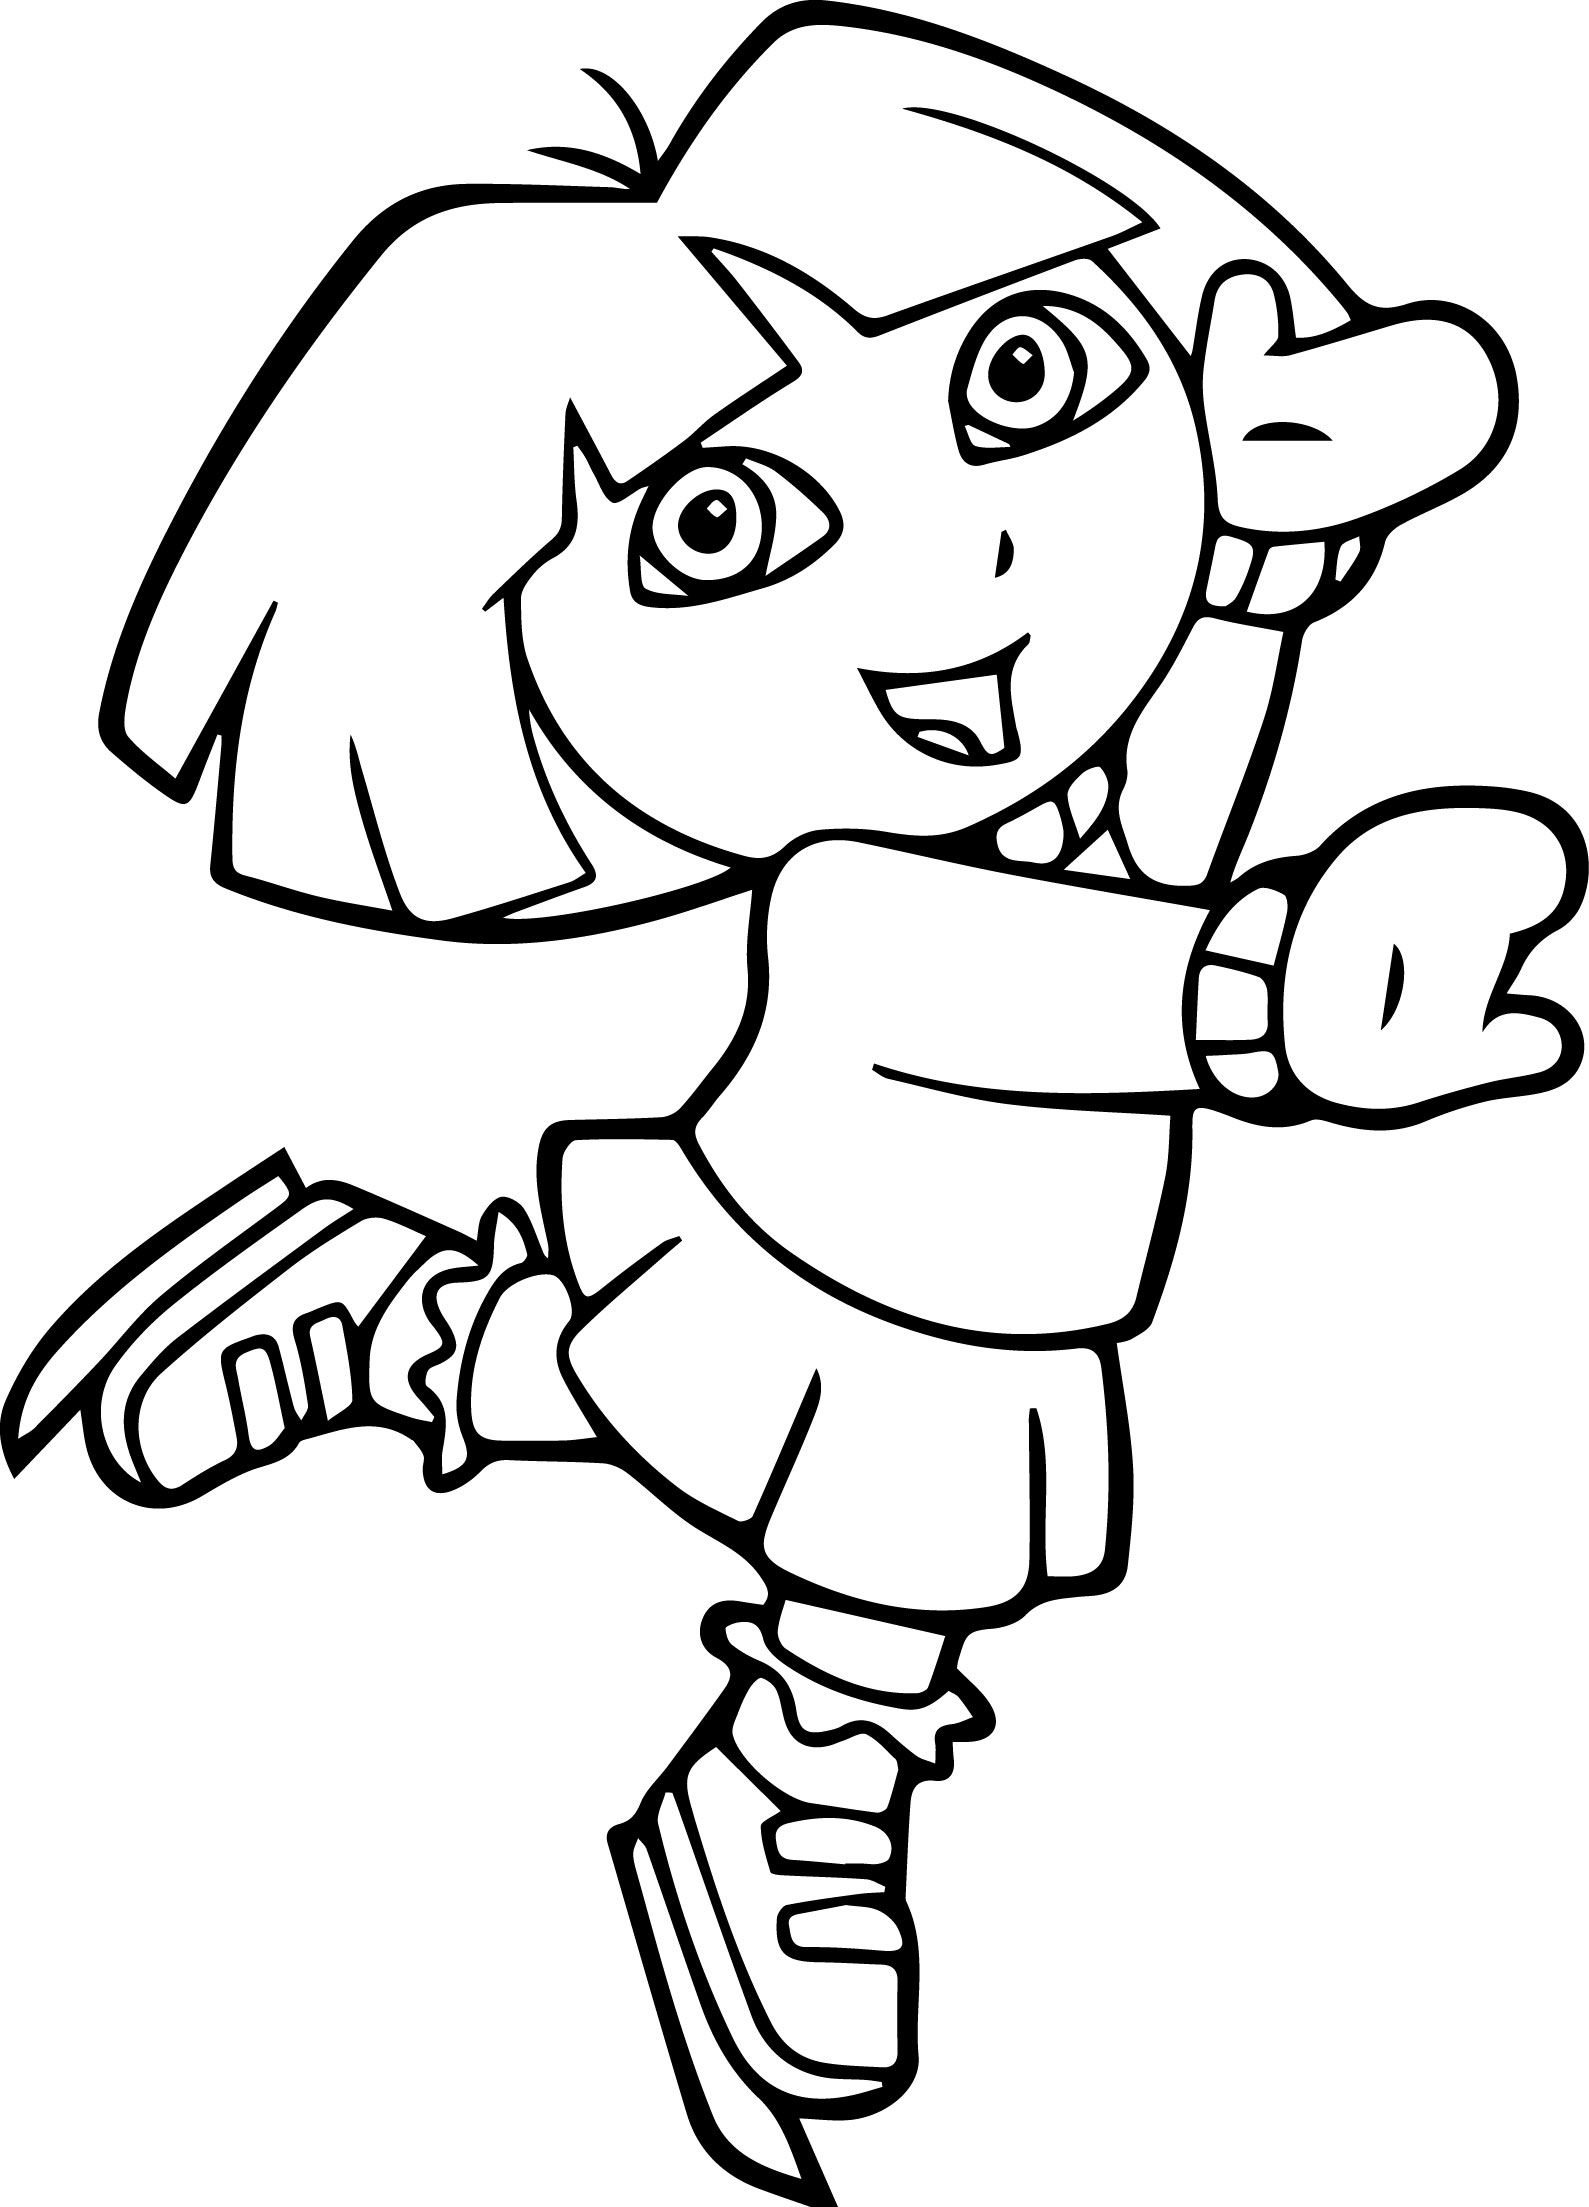 Dora The Explorer Ice Skate Coloring Page